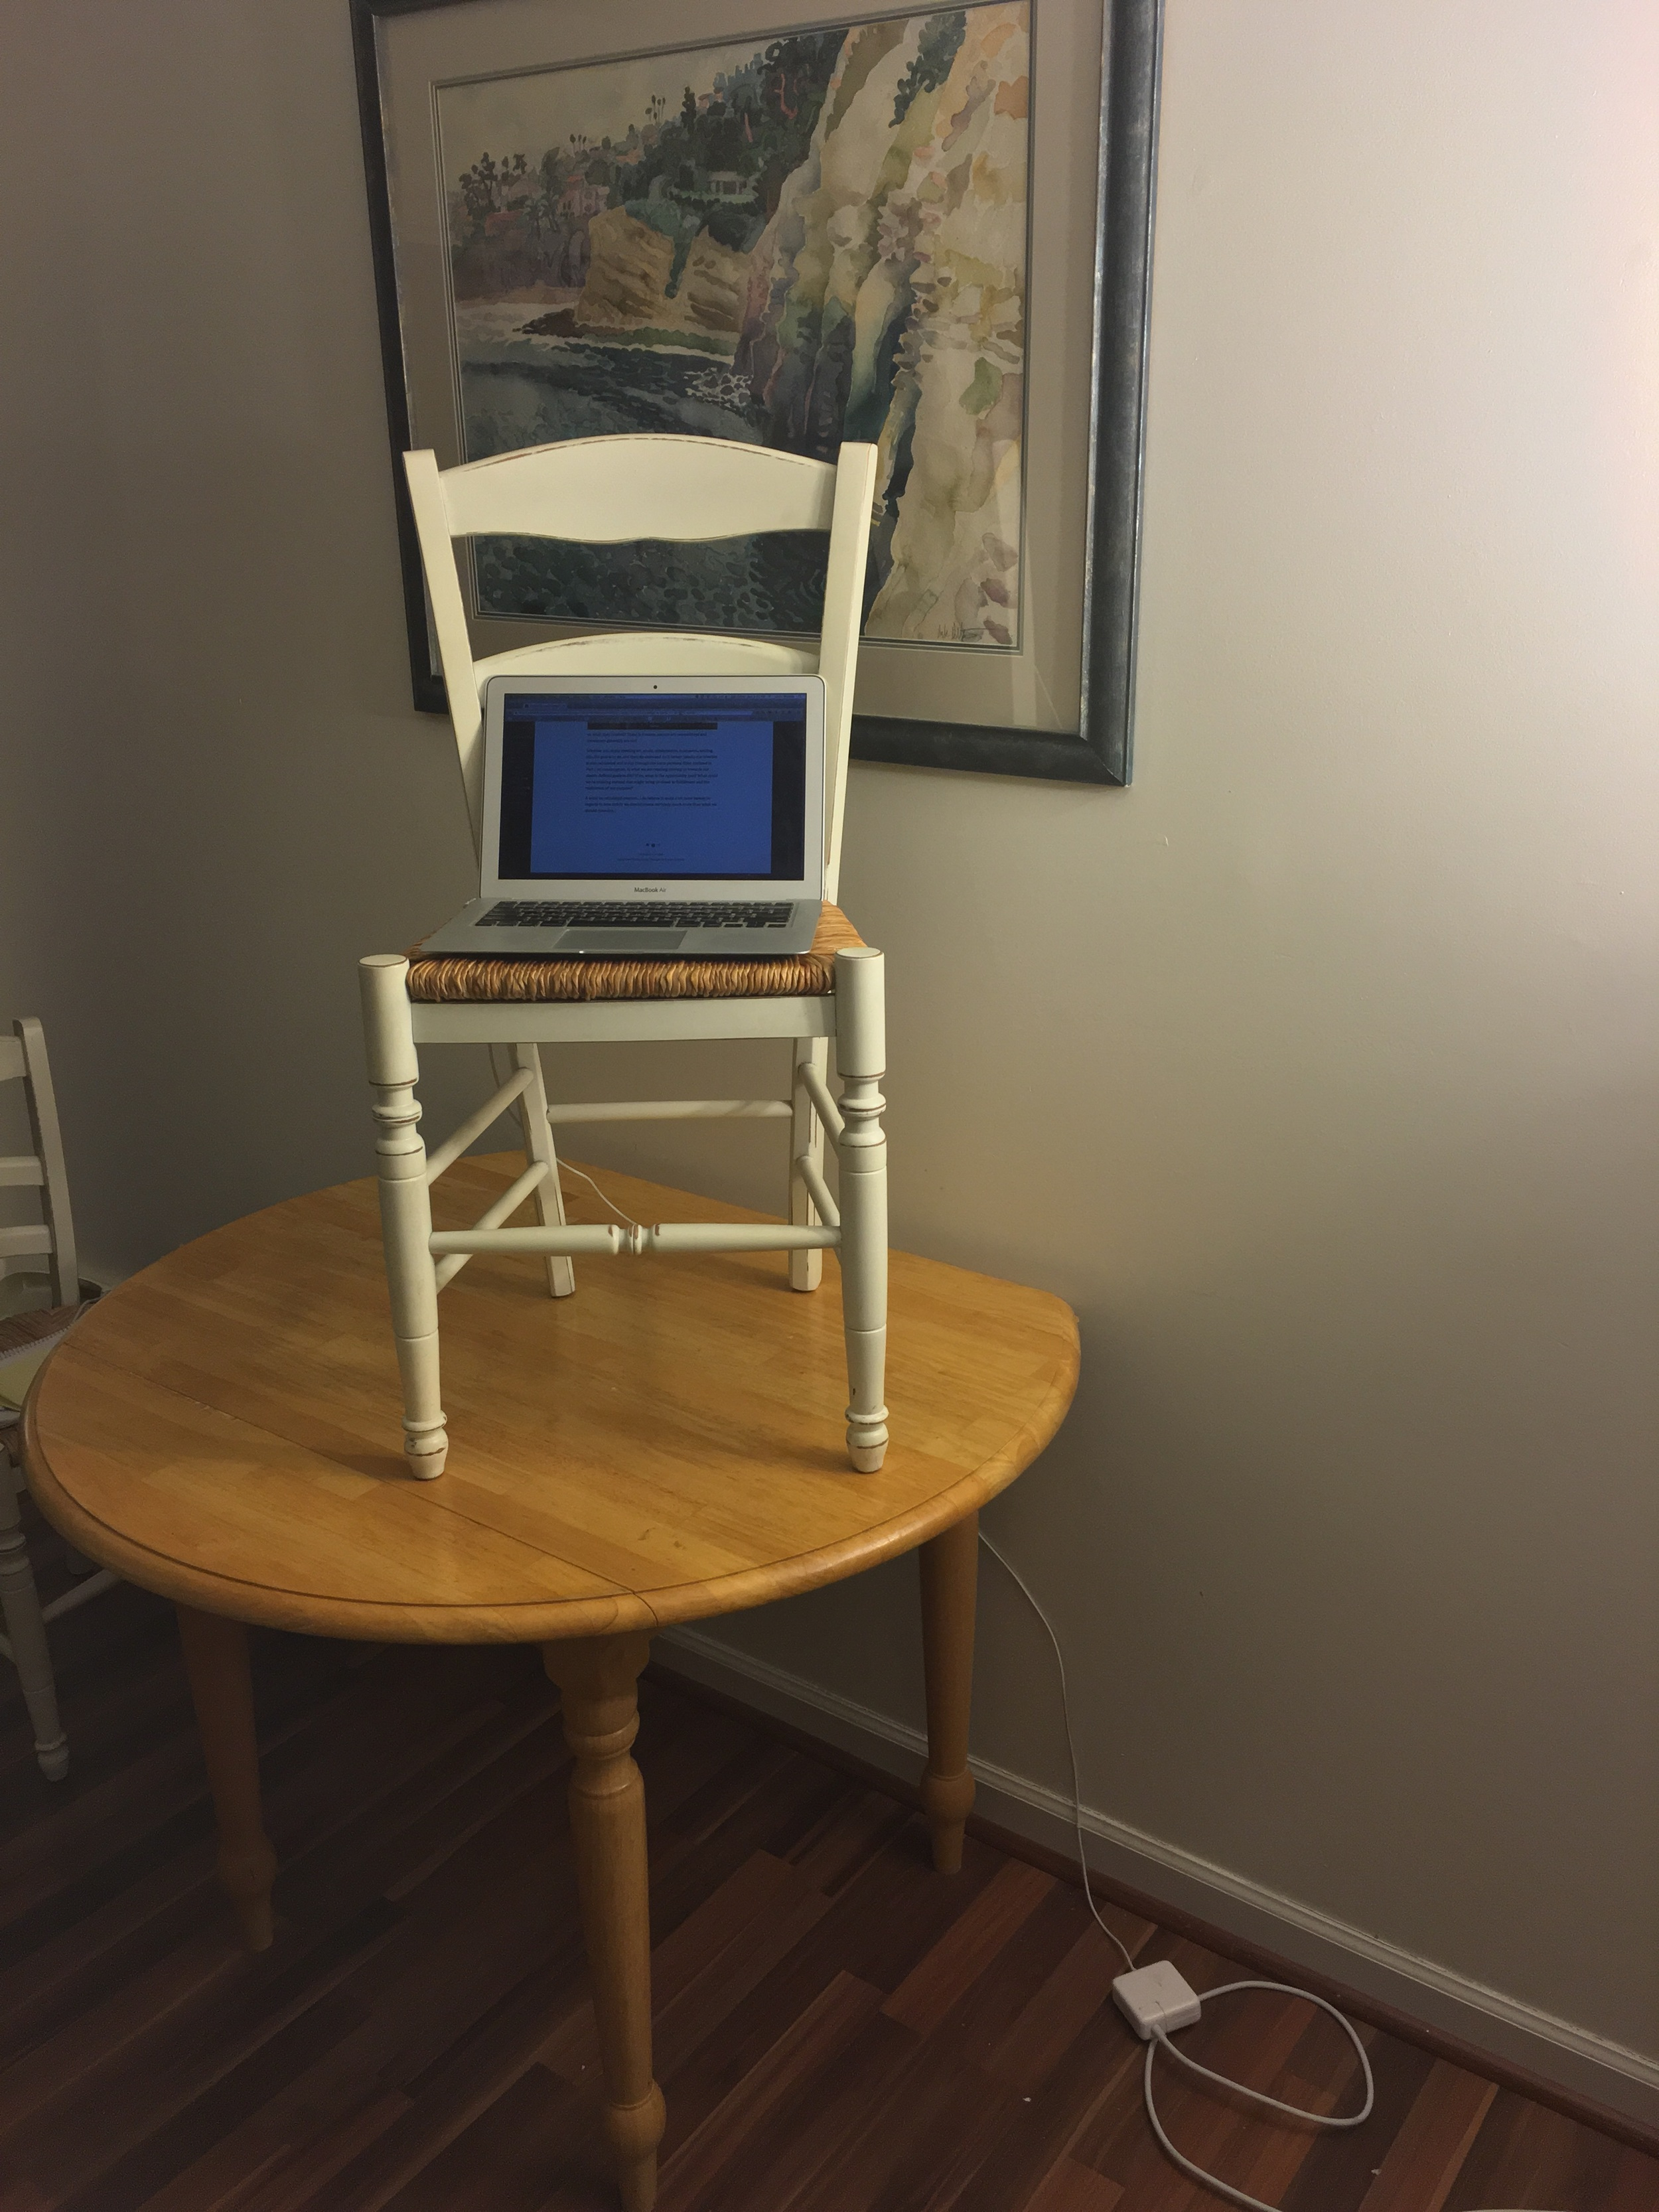 This article was brought to you via a homemade standing desk.